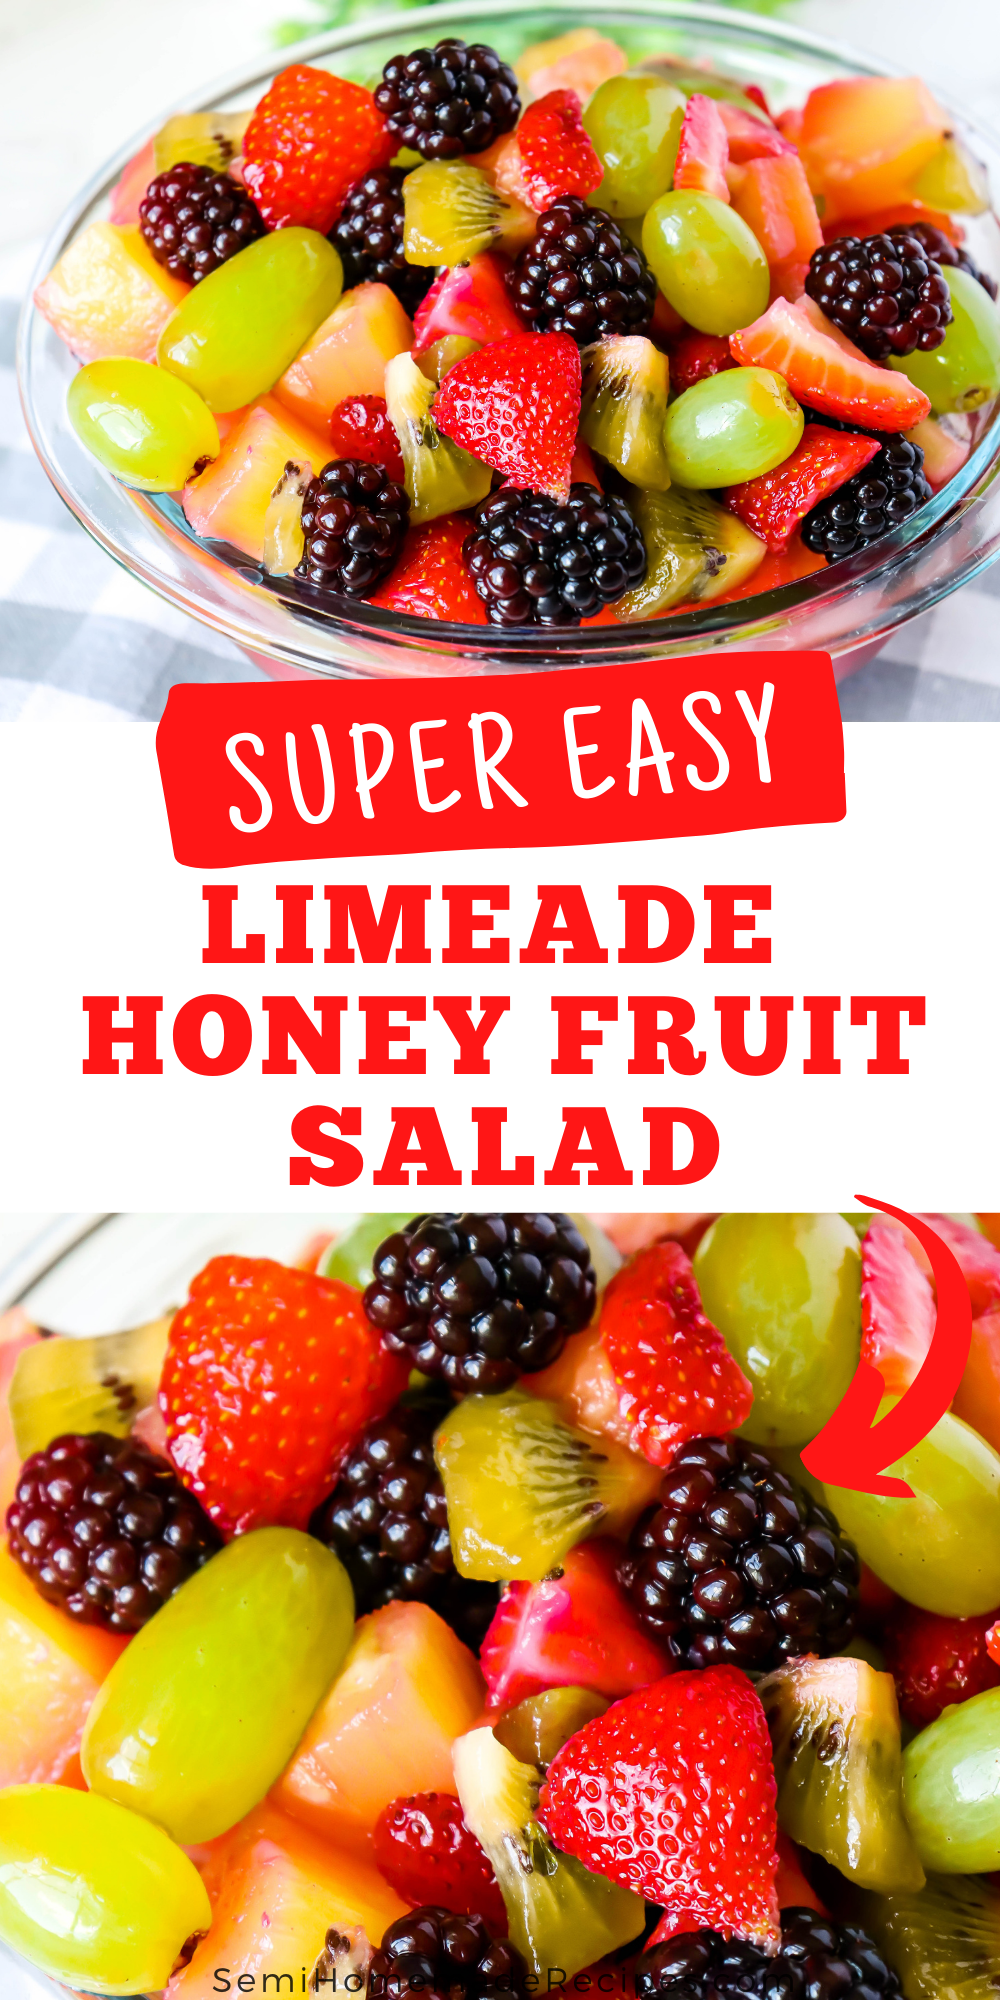 Limeade Honey Fruit Salad - This fresh, sweet and sour mixed fruit salad is perfect for cooling off on a hot summer day!